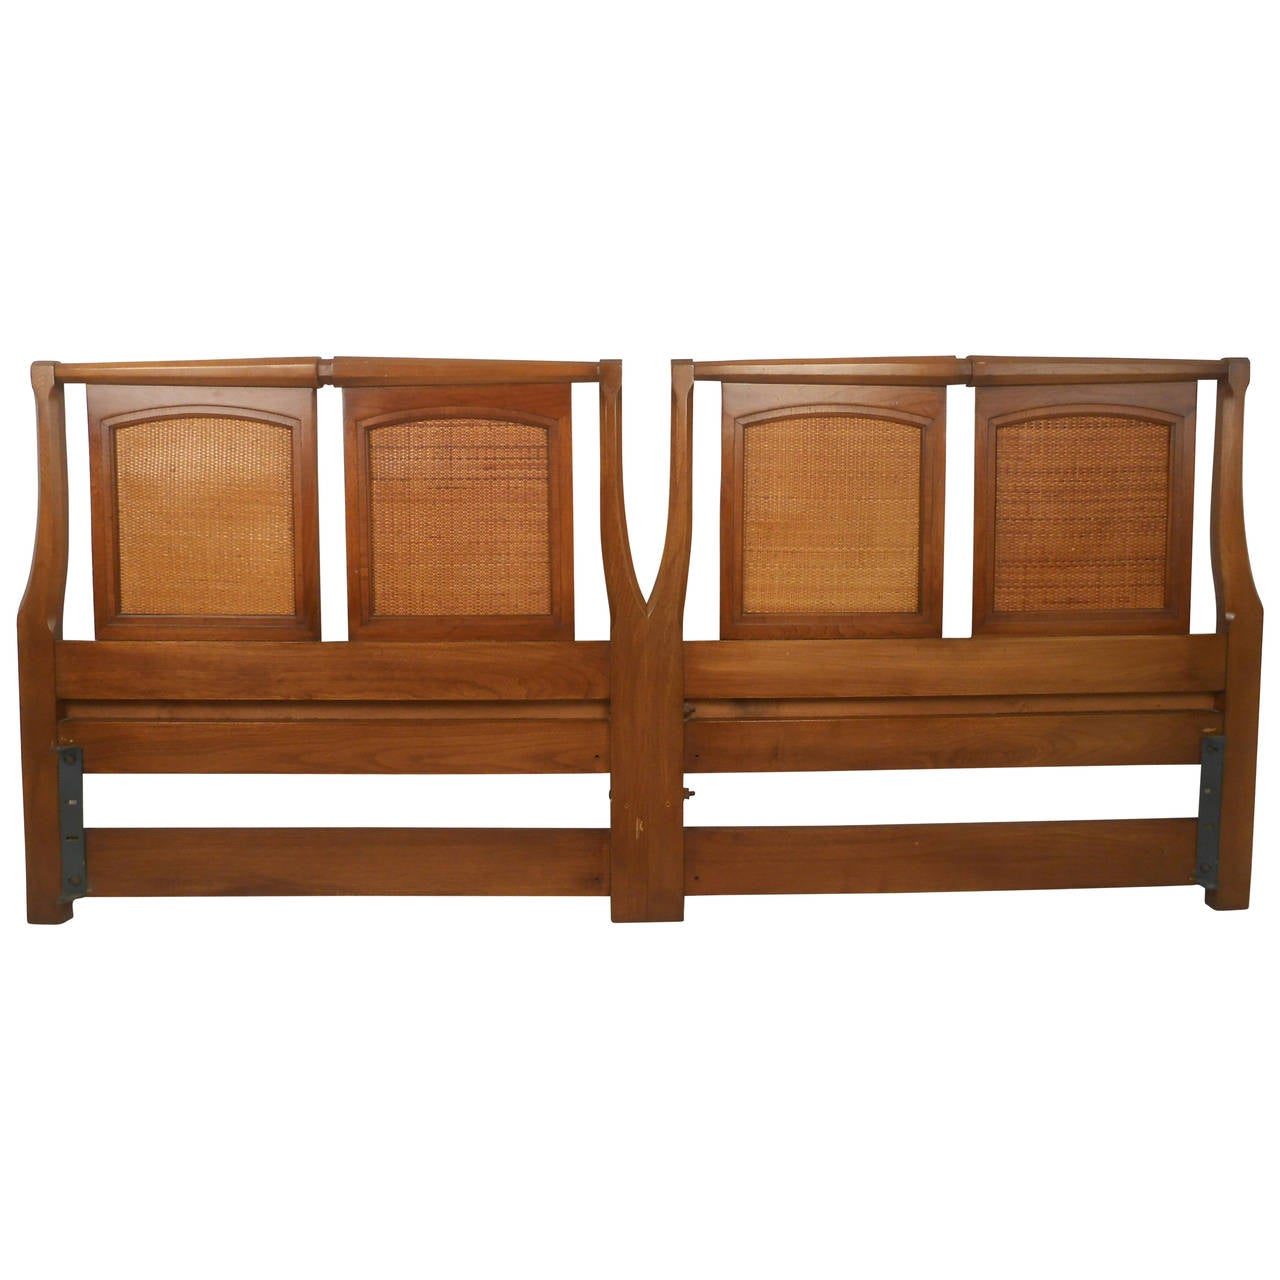 Midcentury Walnut Headboard By White Furniture Co For Sale At 1stdibs